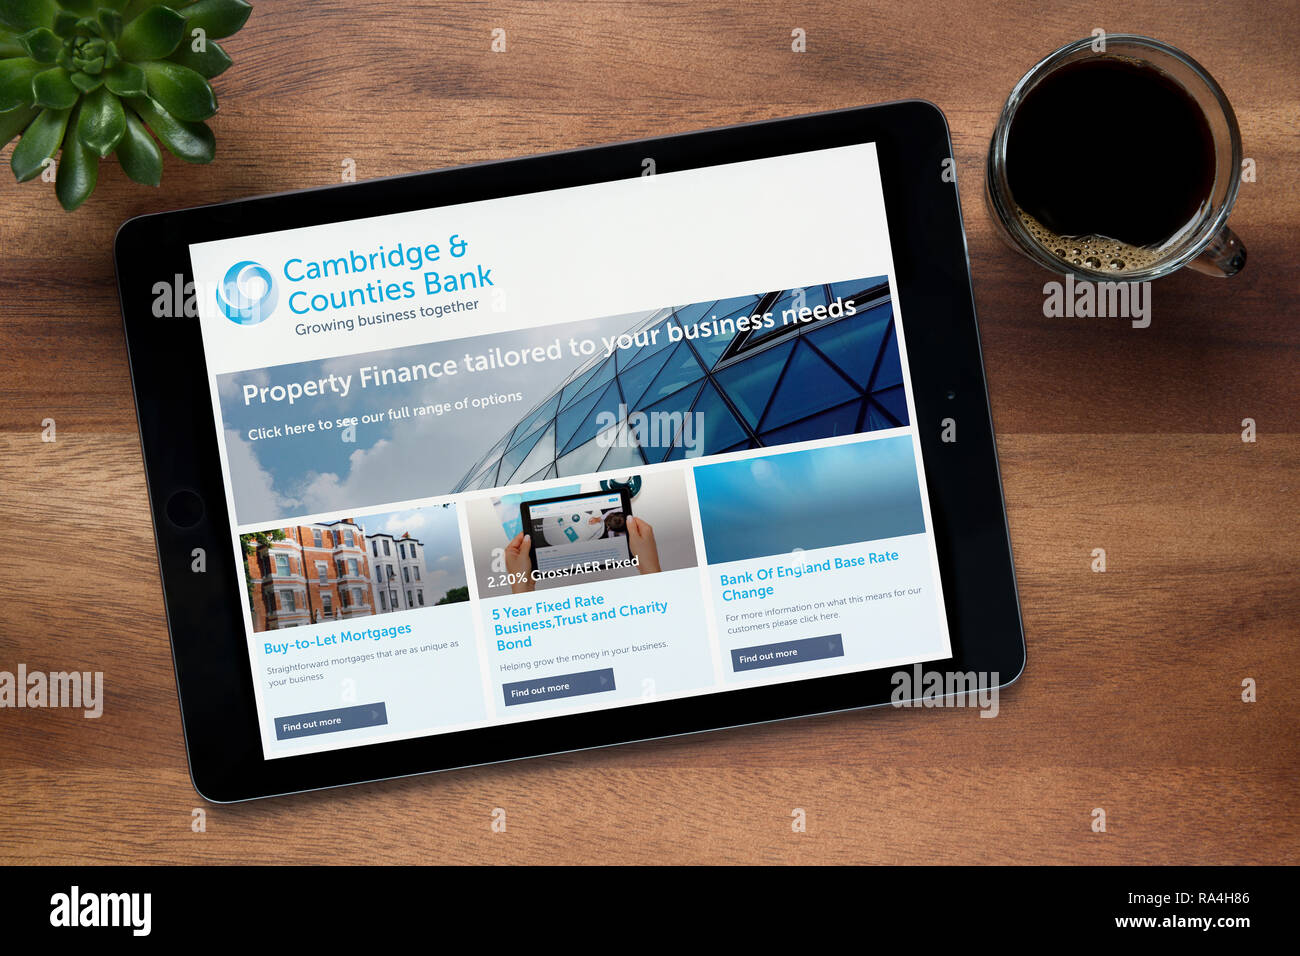 The website of Cambridge & Counties Bank is seen on an iPad tablet, on a wooden table  (Editorial use only). - Stock Image